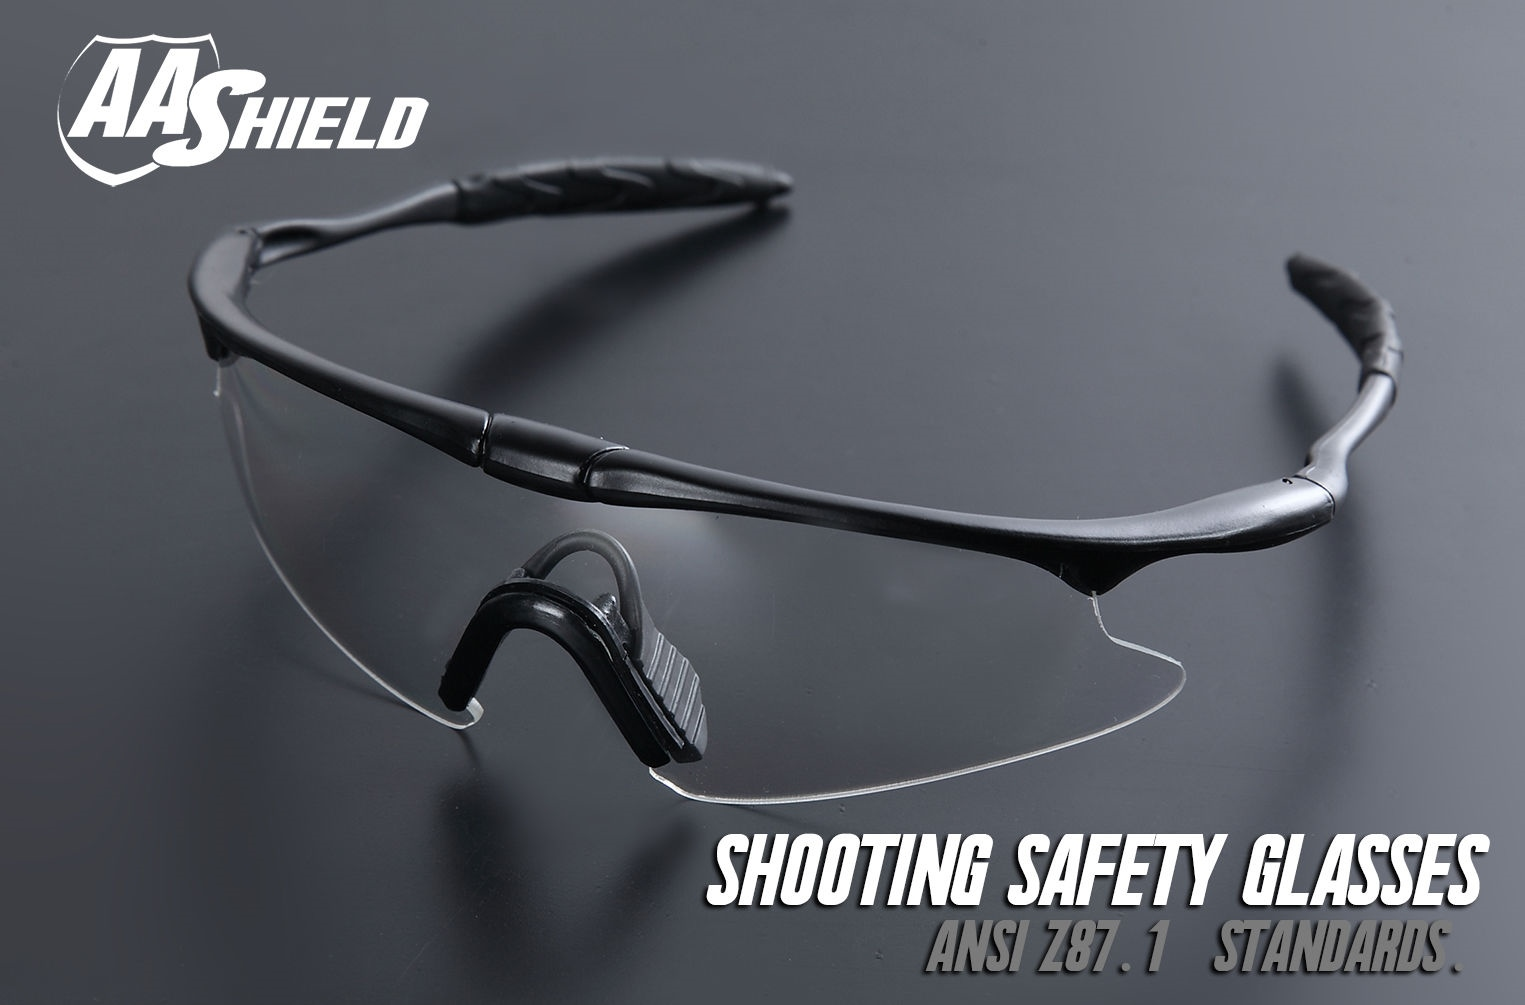 aa shield shooting safety glass protective goggles